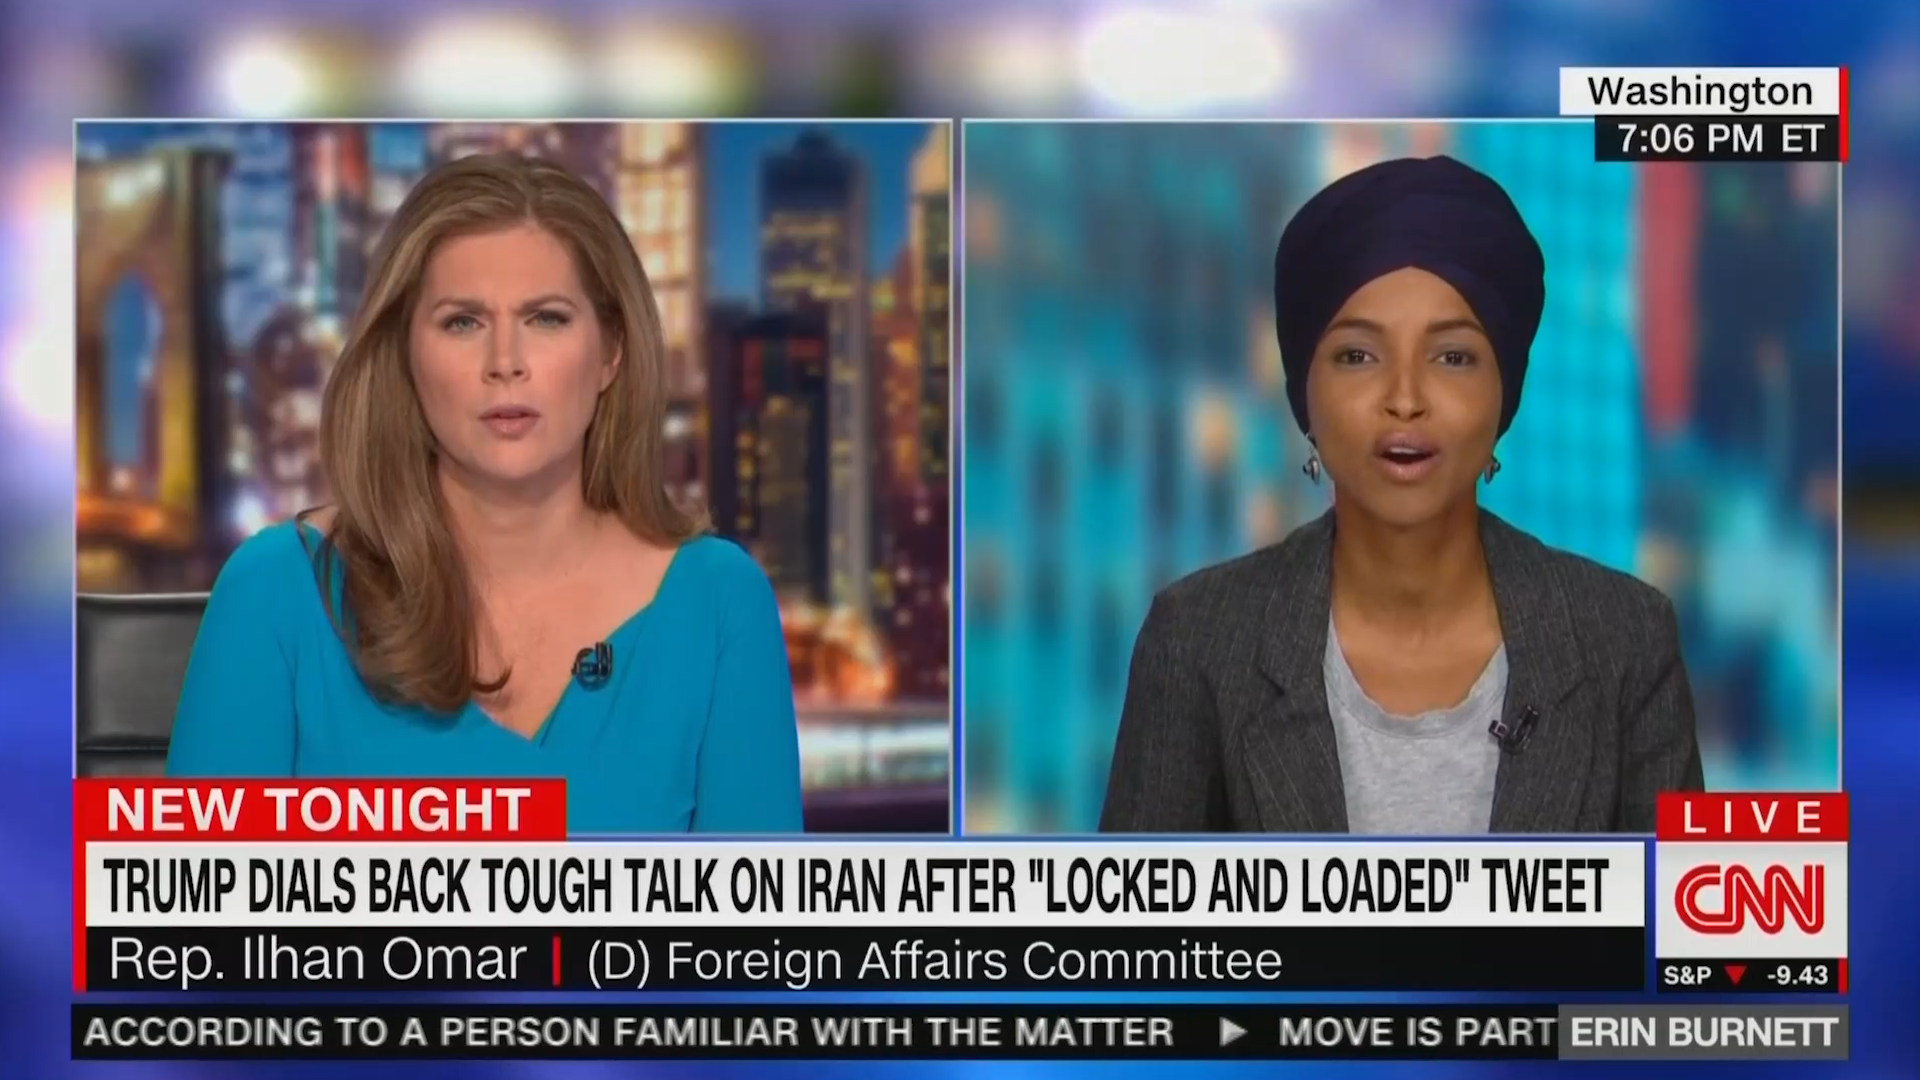 Ilhan Omar doesnt trust Trump administration, warns against another endless war